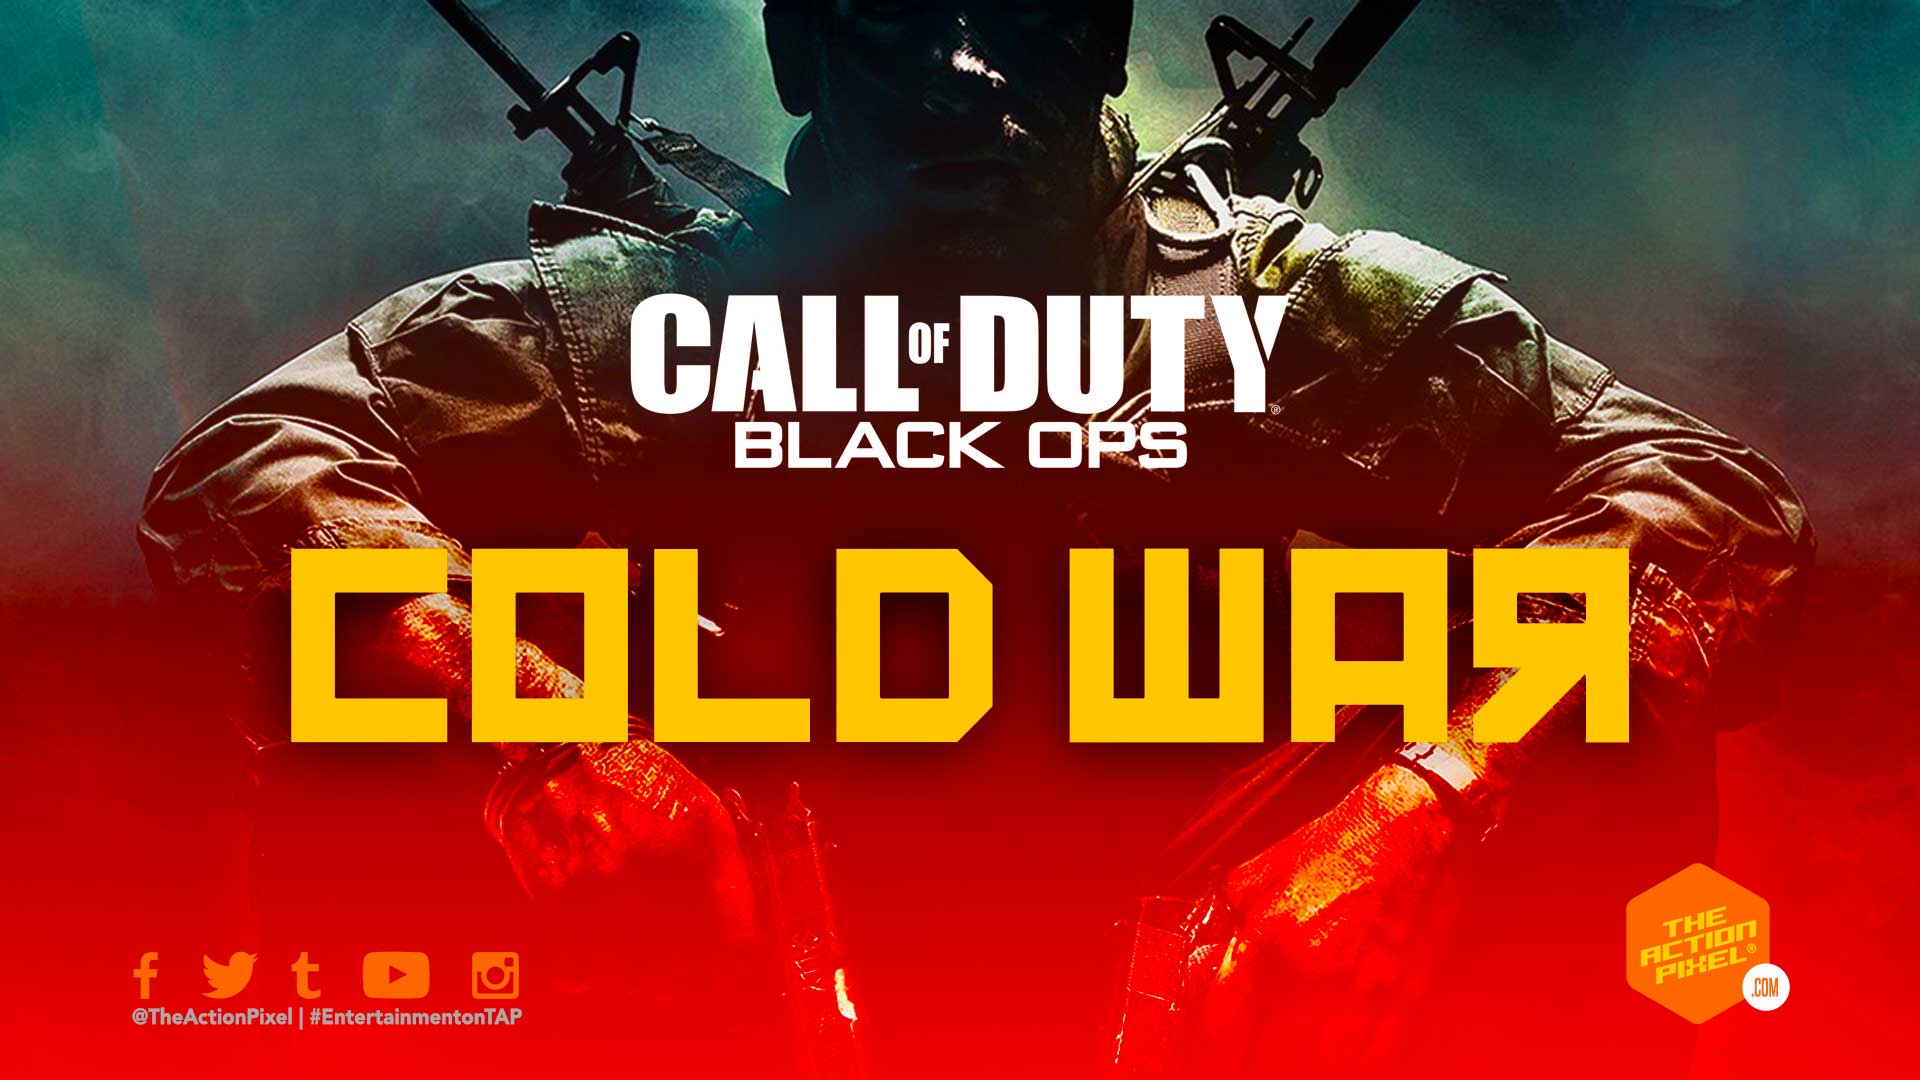 cold war, call of duty black ops 2020, cod,cod black ops, call of duty: Black Ops Cold War, the action pixel, treyarch, entertainment on tap,russia, russian, entertainment on tap